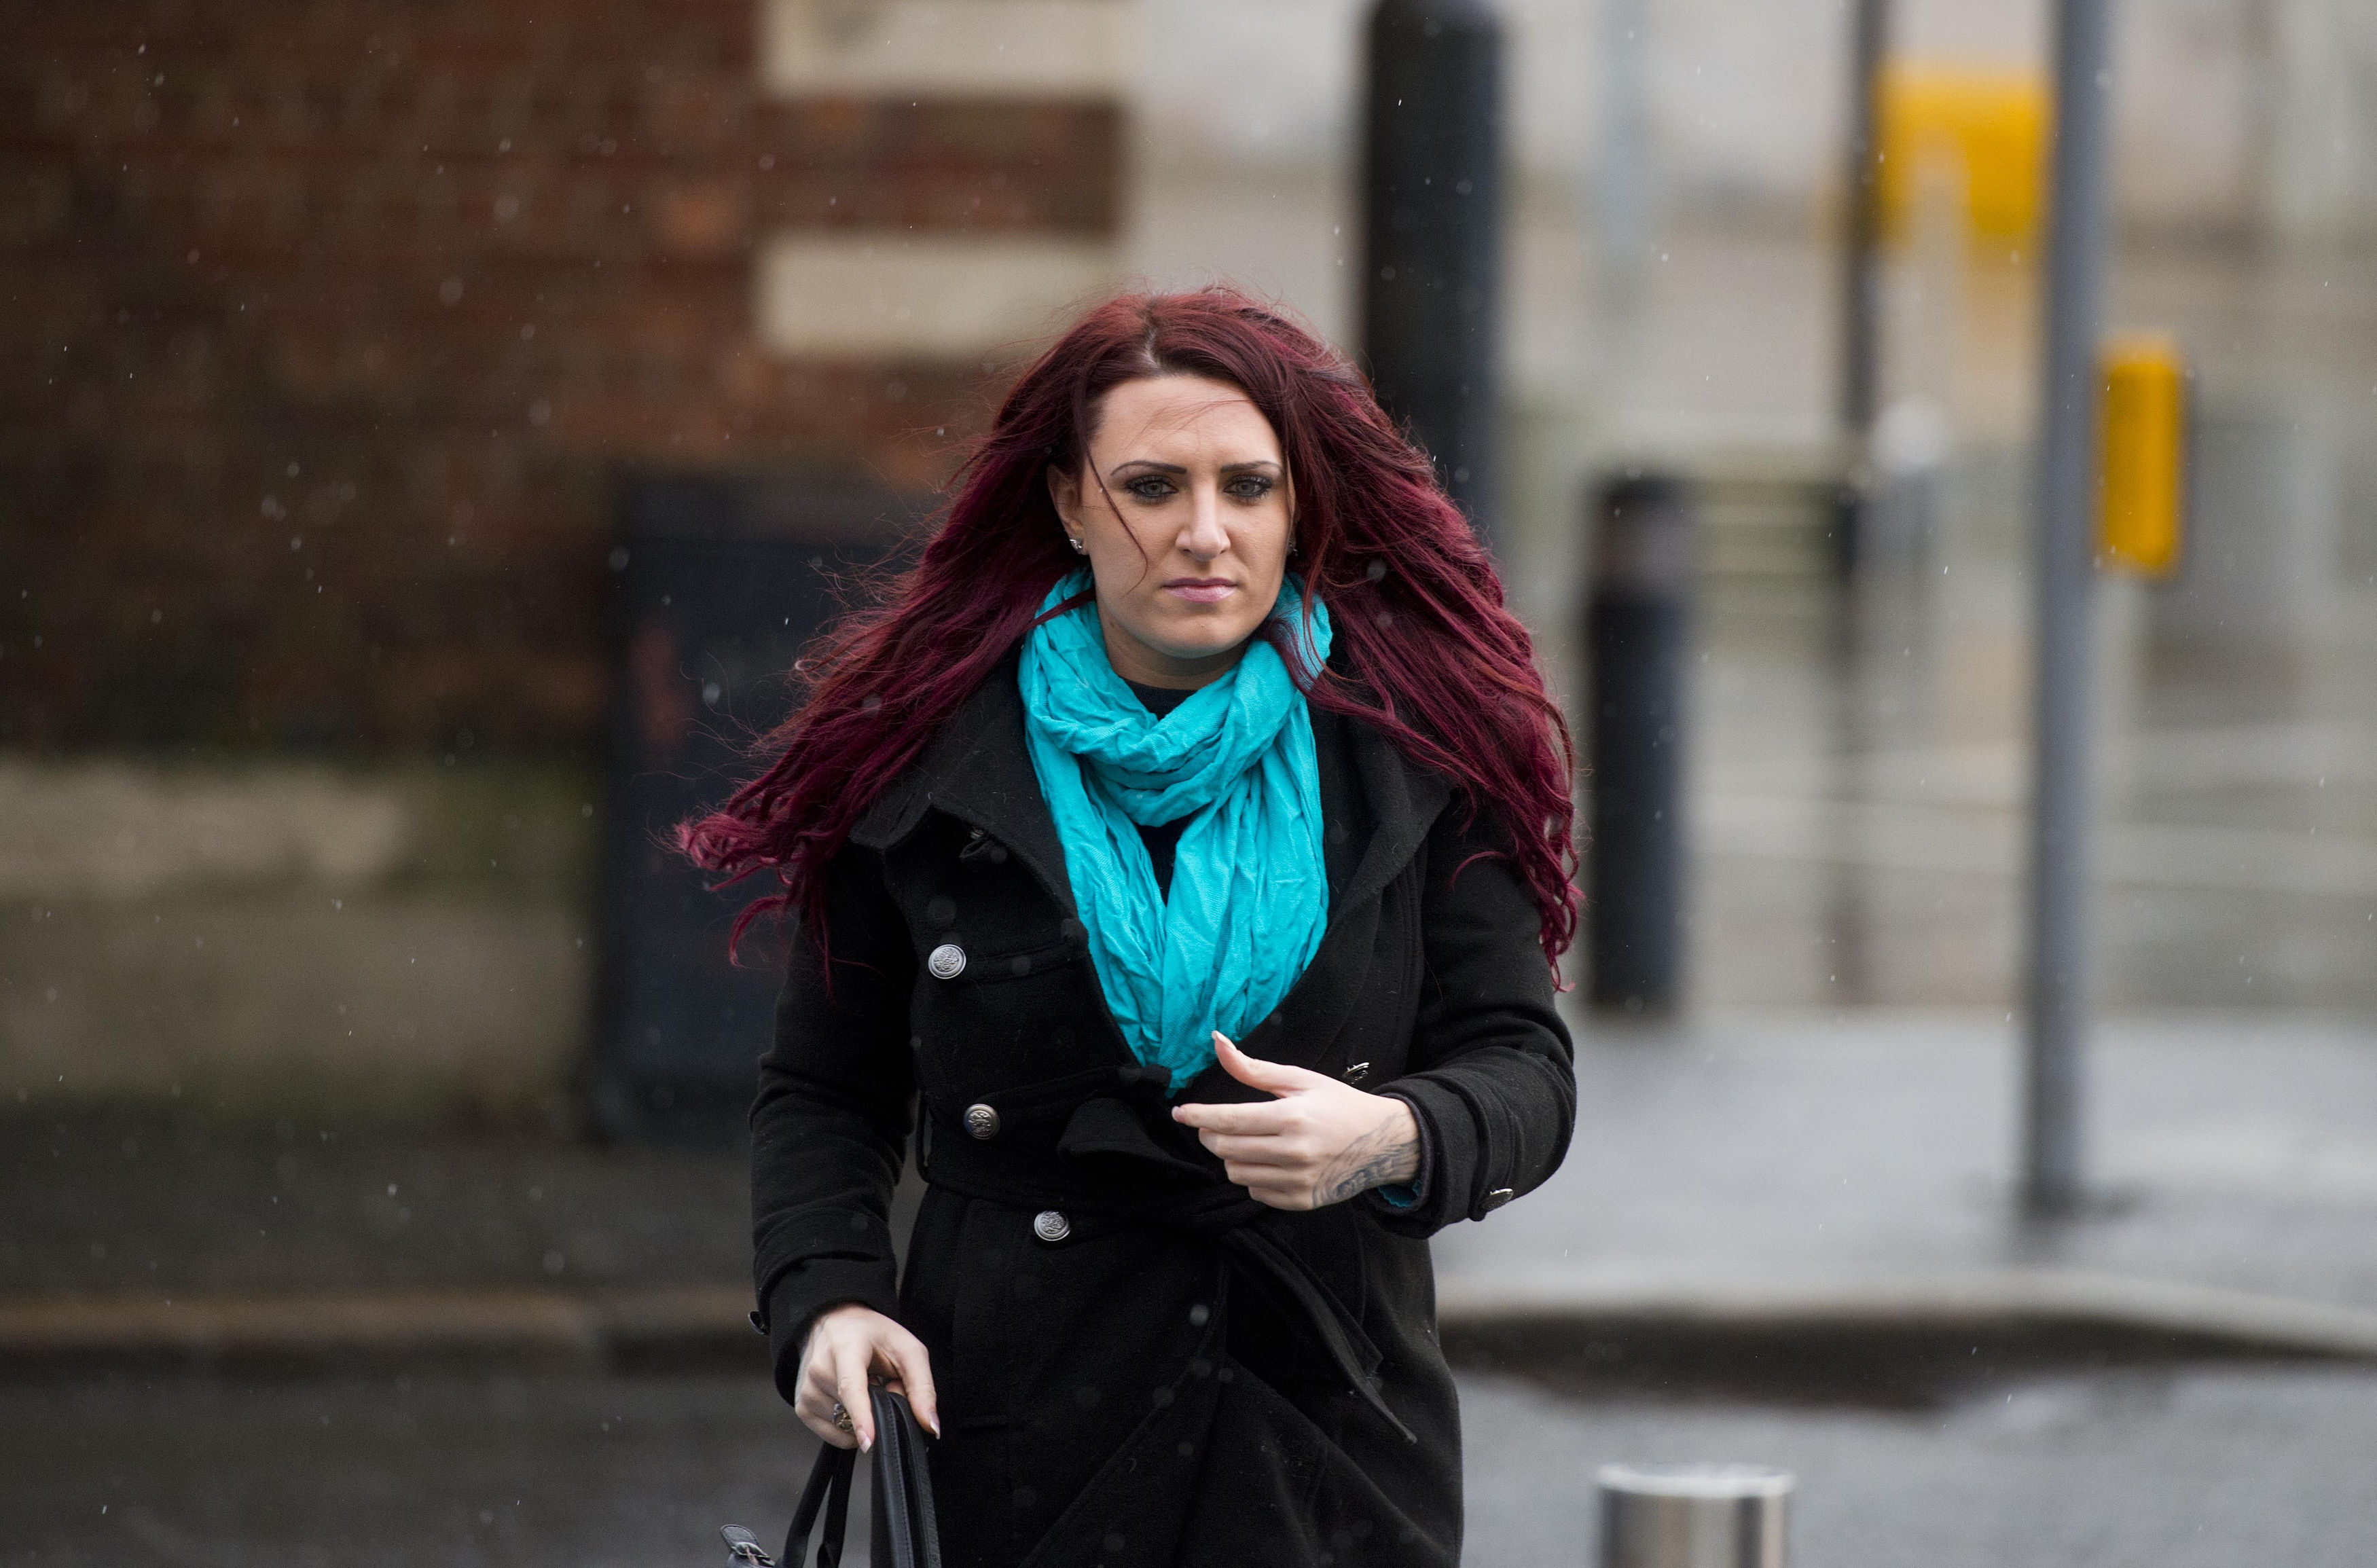 Jayda Fransen: Twitter suspends Britain First leader retweeted by Donald Trump